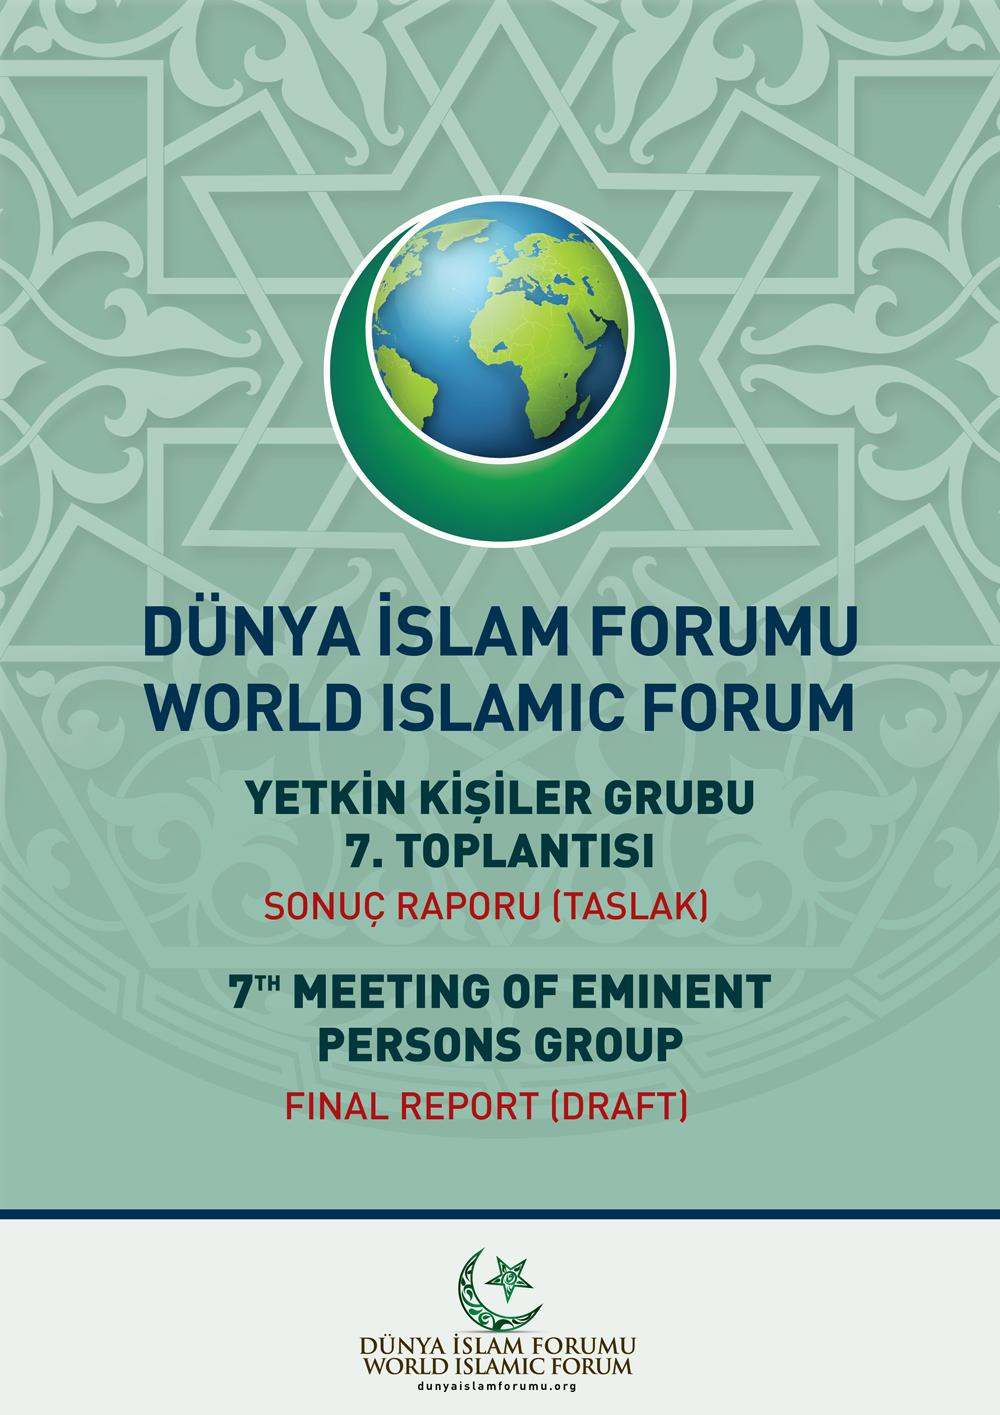 7th Eminent Persons Group (EPG) of the World Islamic Forum Meeting